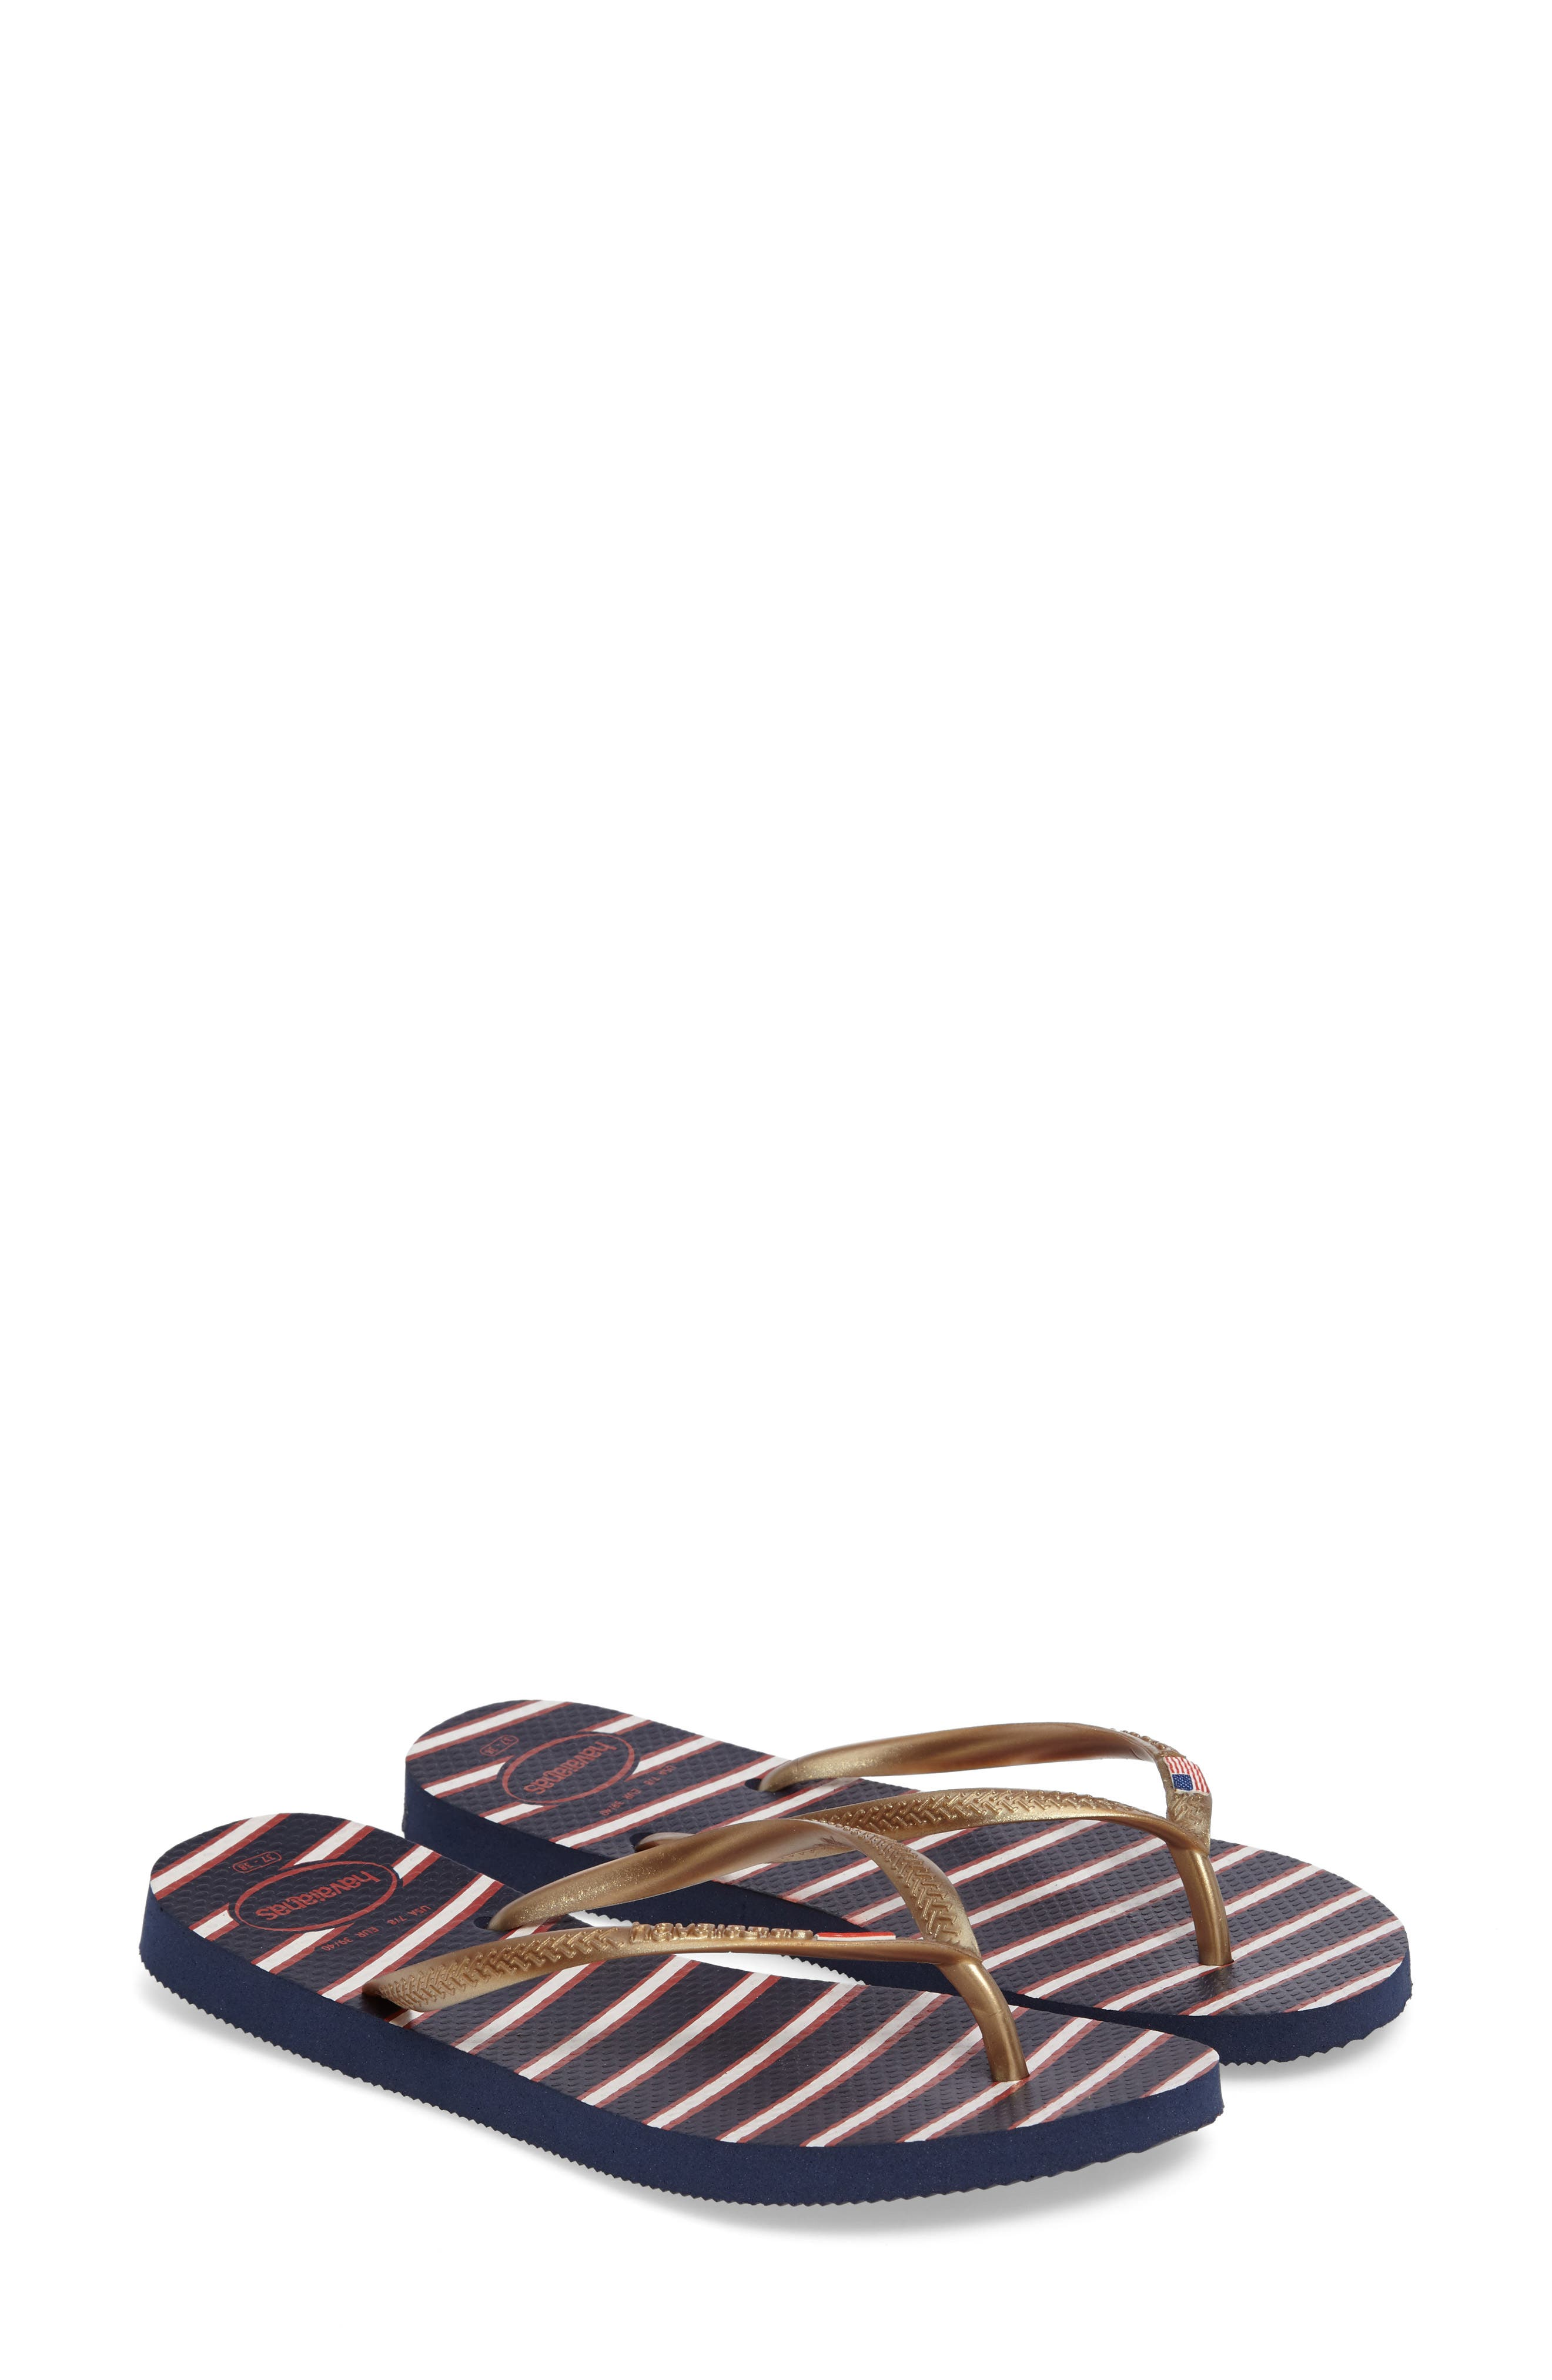 Alternate Image 1 Selected - Havaianas 'Slim' Flip Flop (Women)